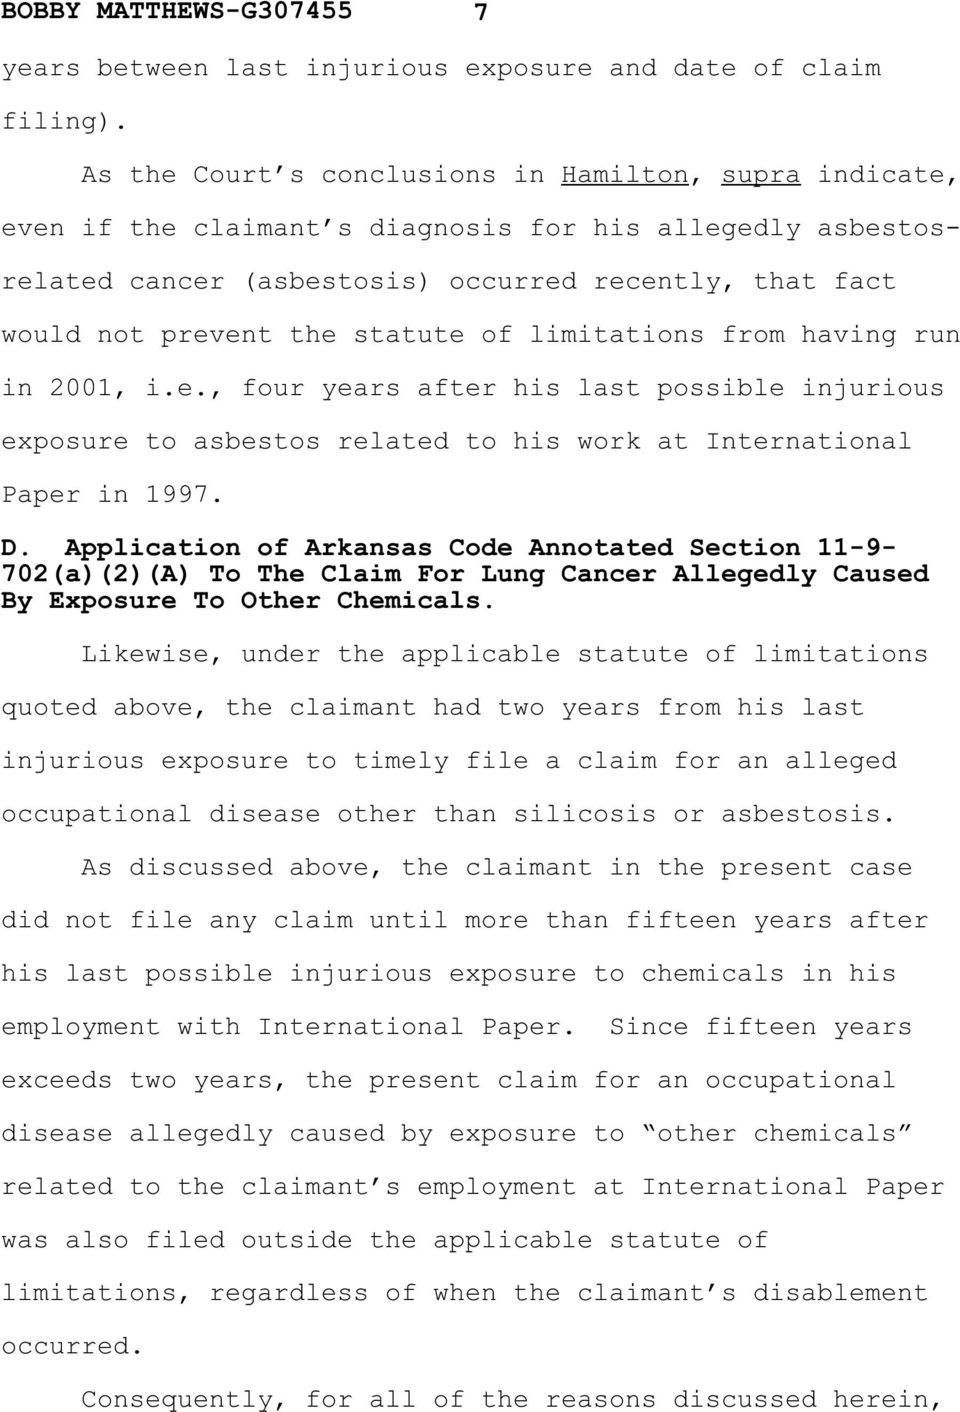 statute of limitations from having run in 2001, i.e., four years after his last possible injurious exposure to asbestos related to his work at International Paper in 1997. D.